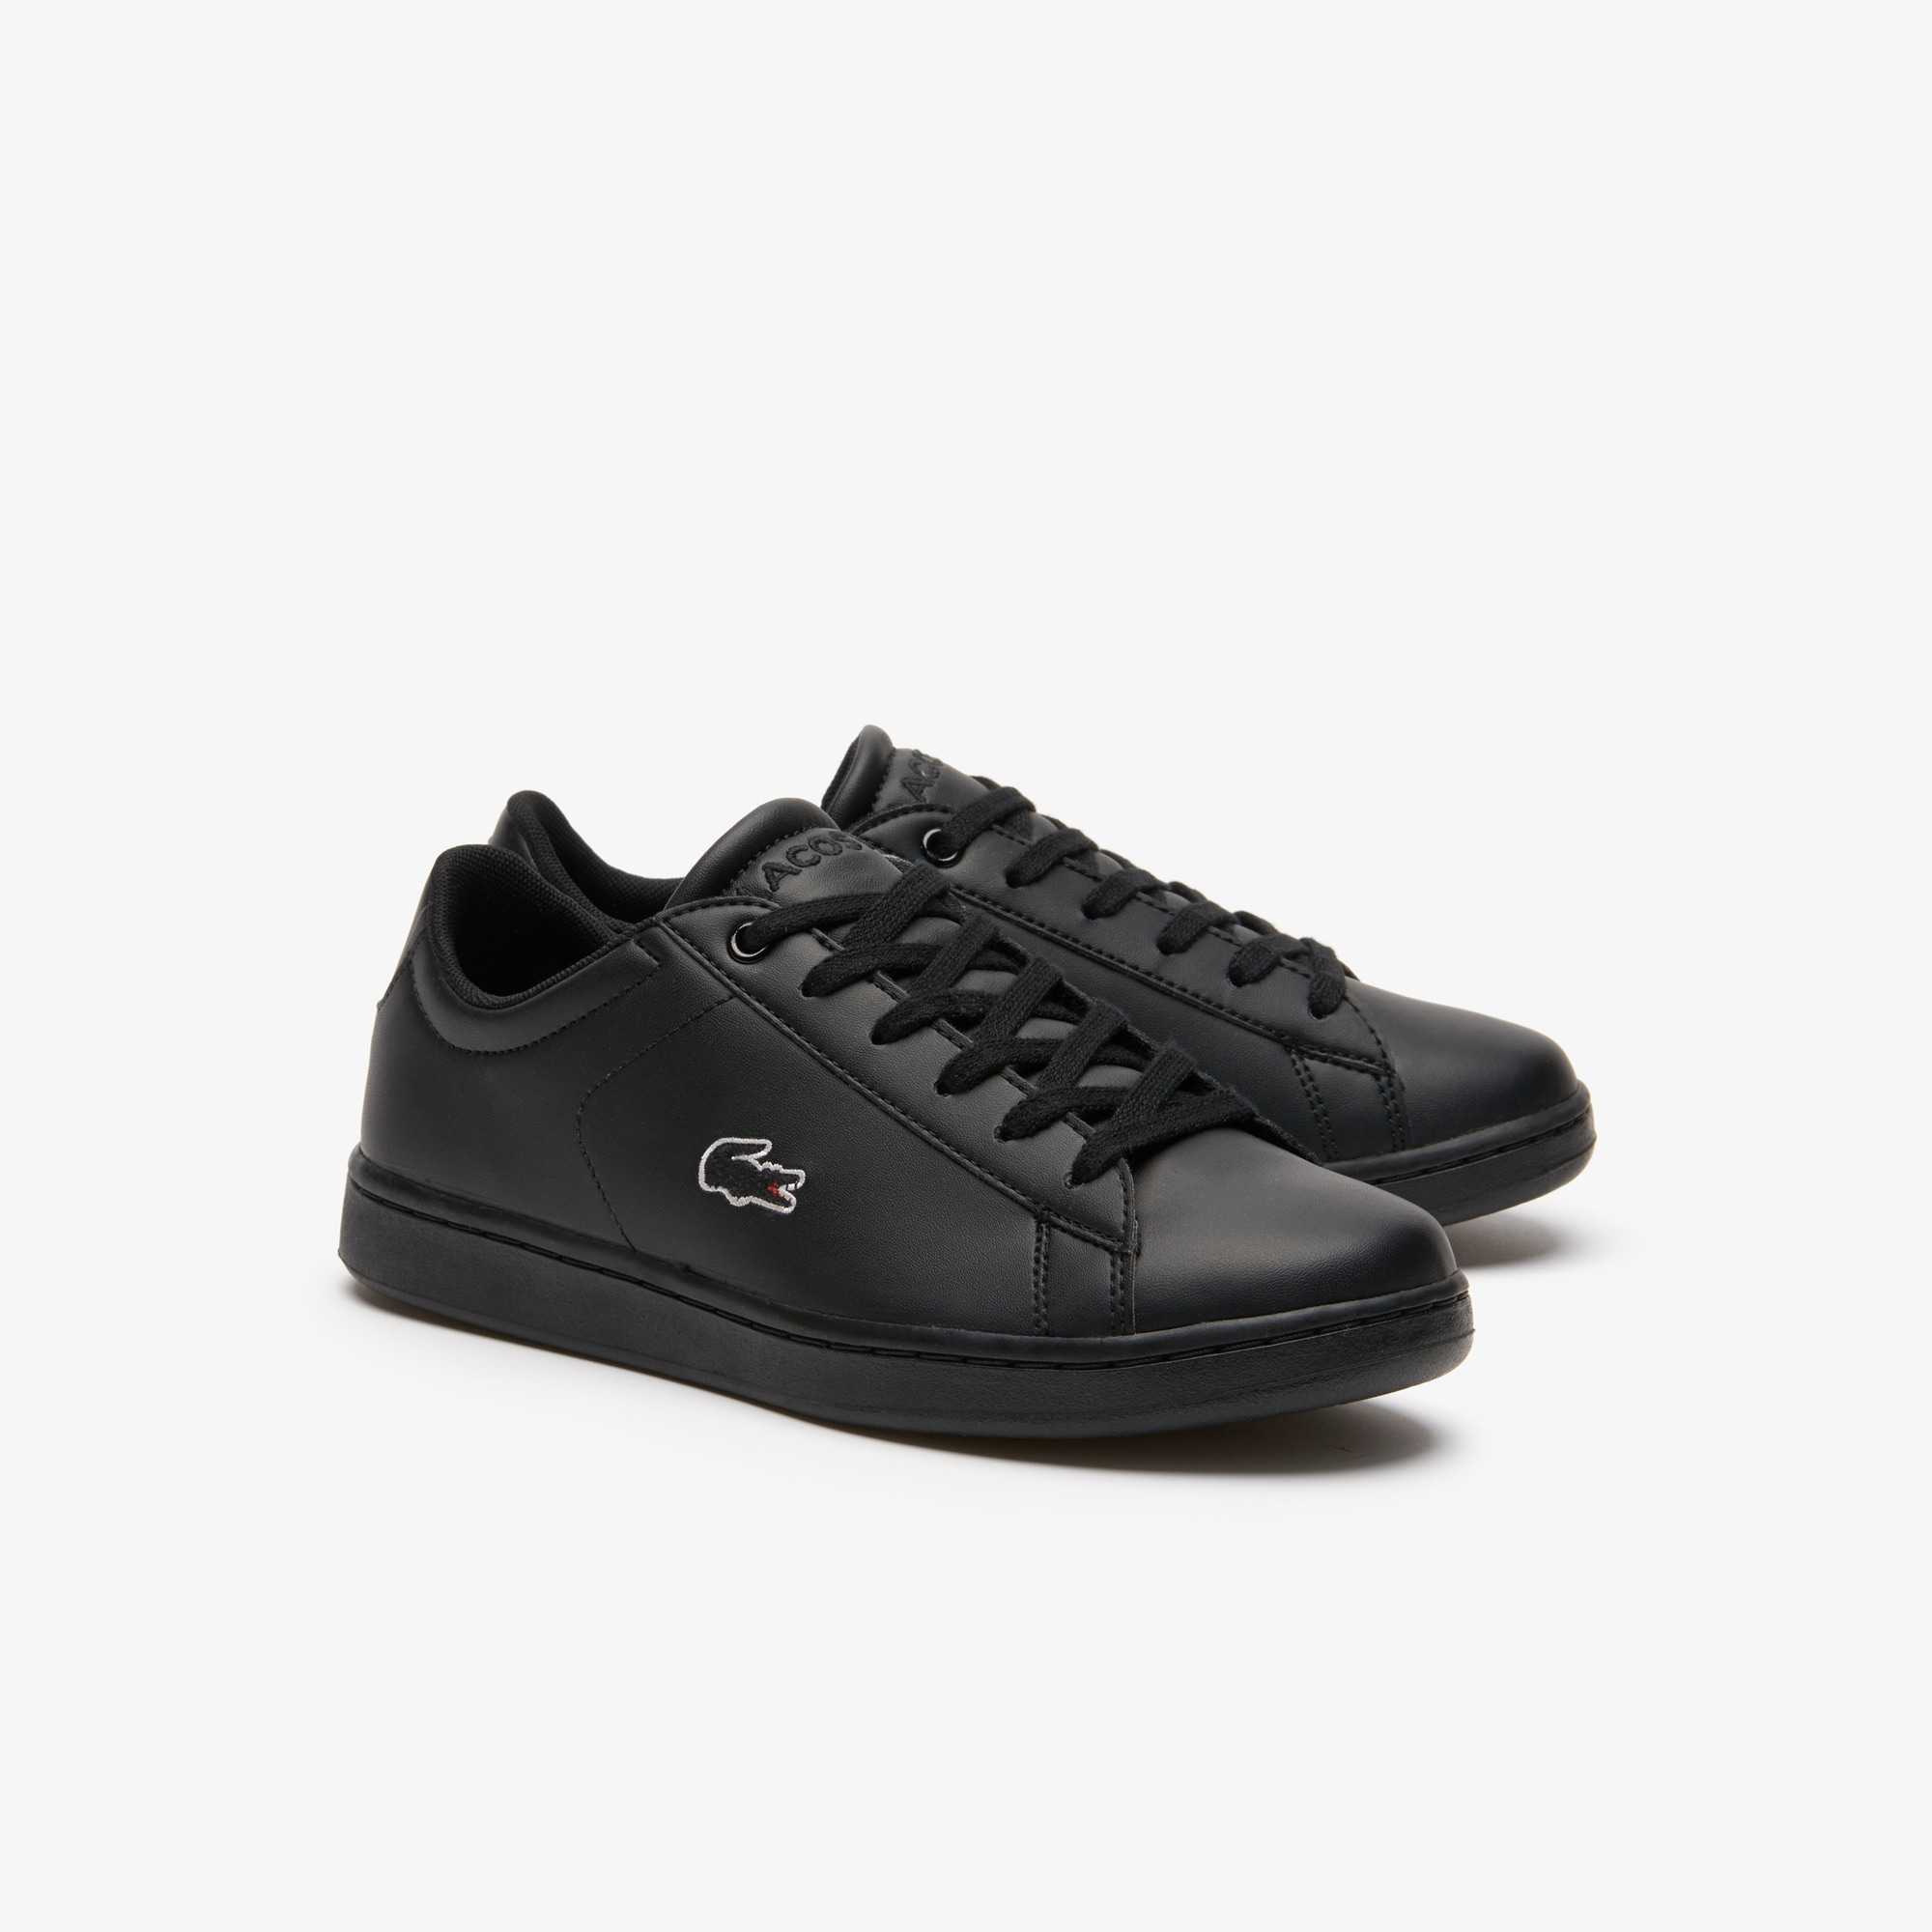 Junior-Sneakers CARNABY EVO aus Synthetik mit Mesh-Futter